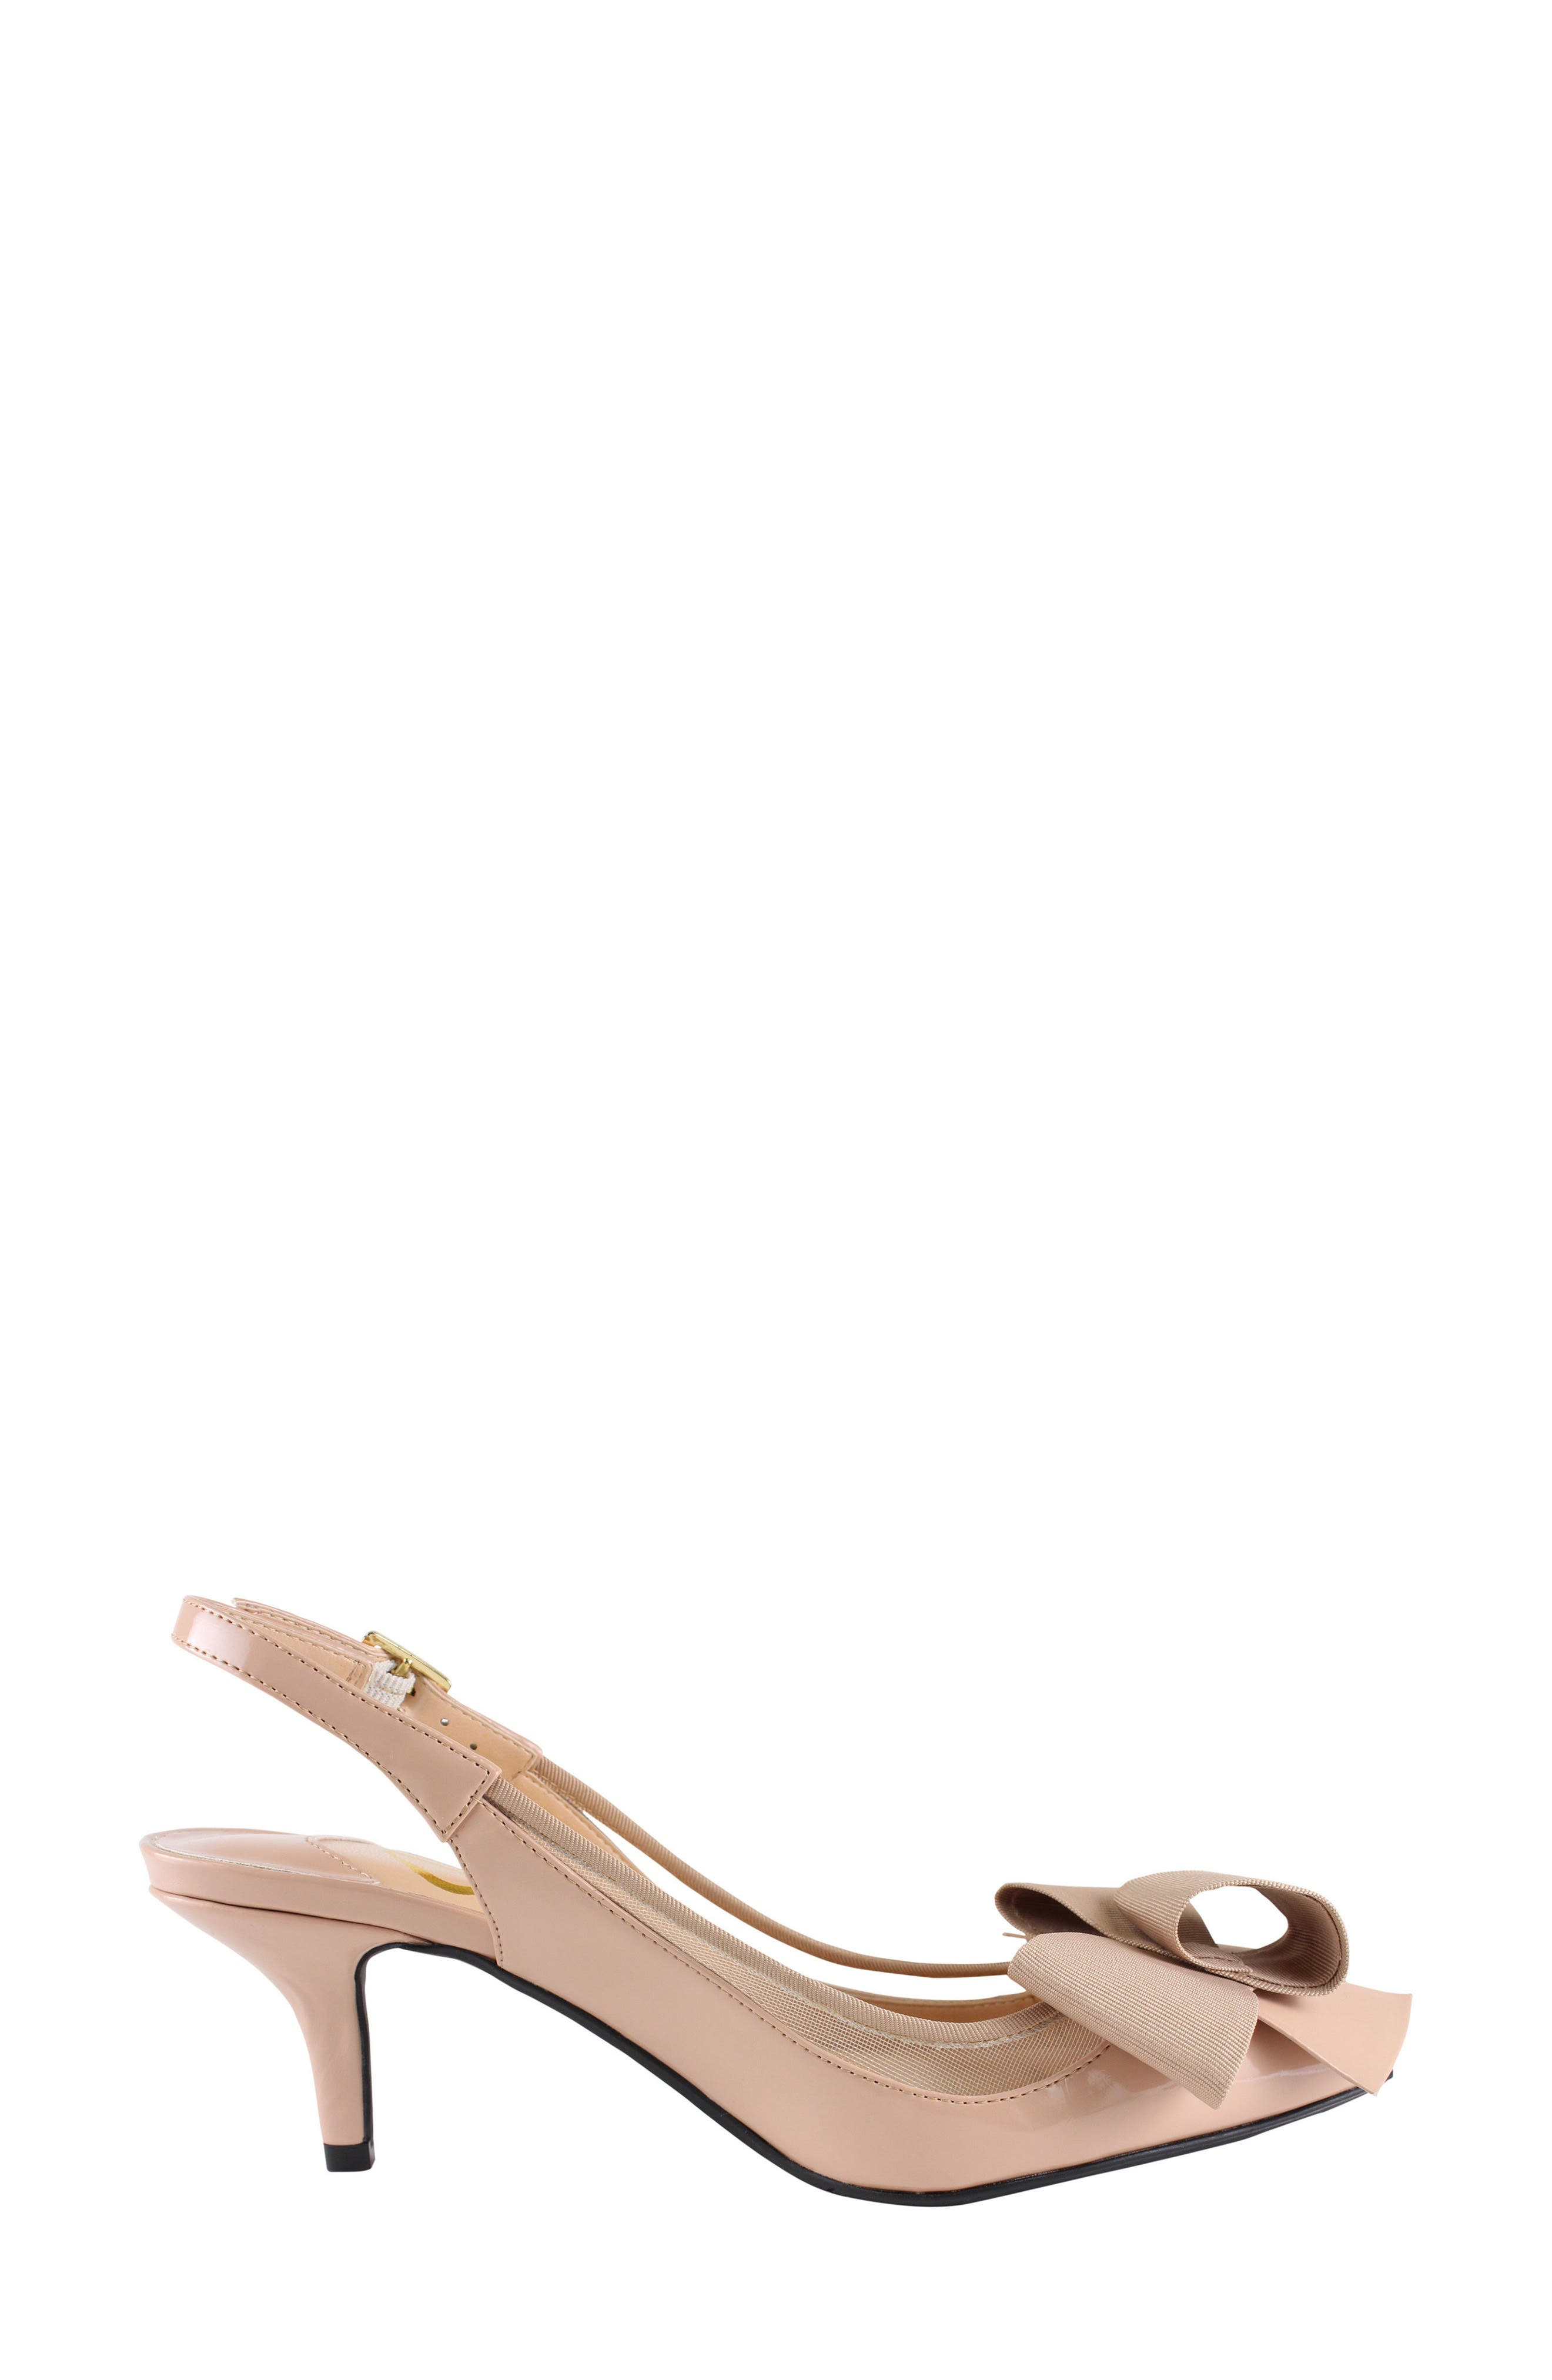 'Garbi' Pointy Toe Bow Pump,                             Alternate thumbnail 3, color,                             260